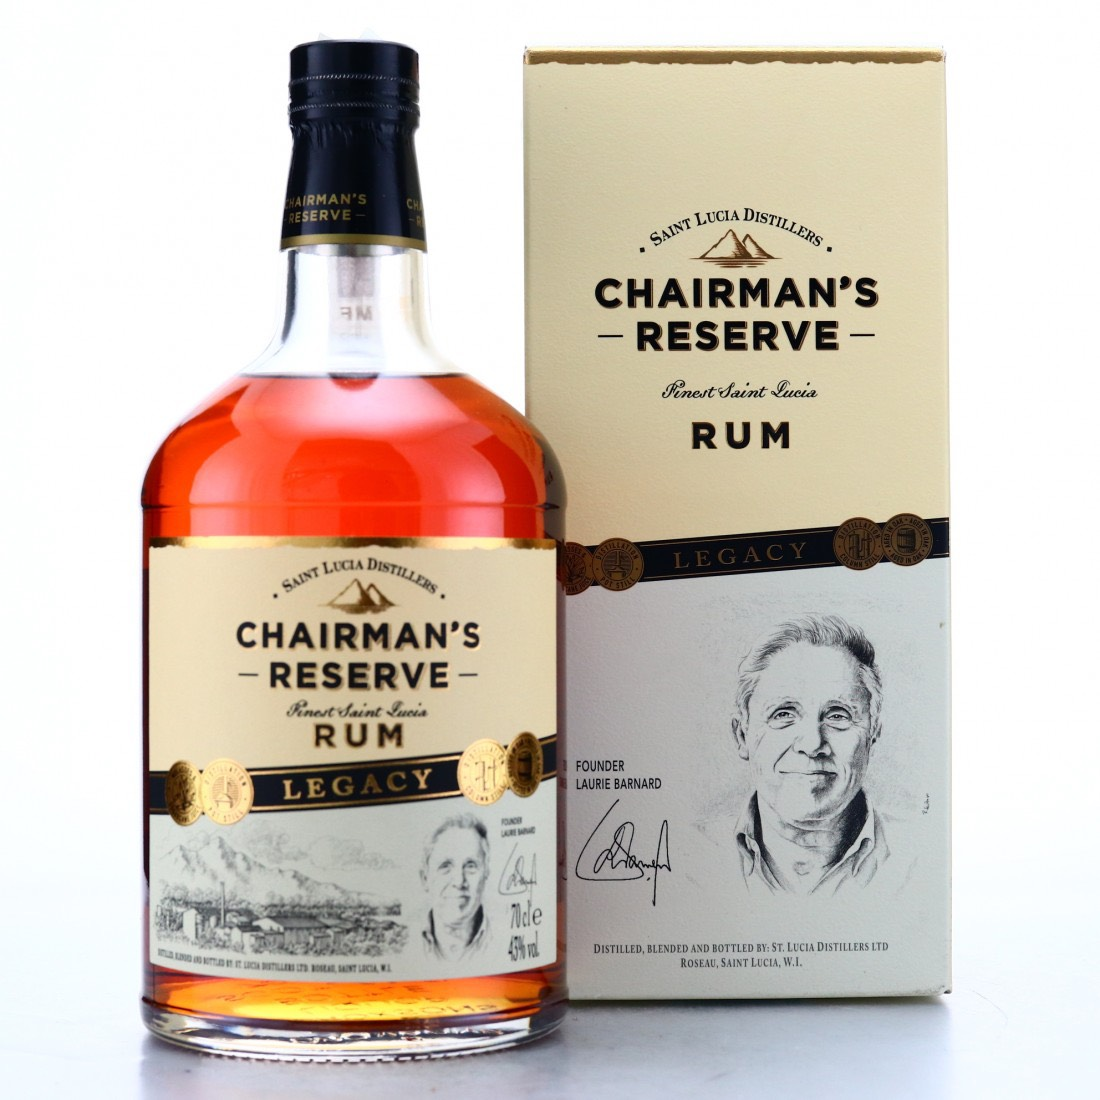 Bottle image of Chairman's Reserve Legacy